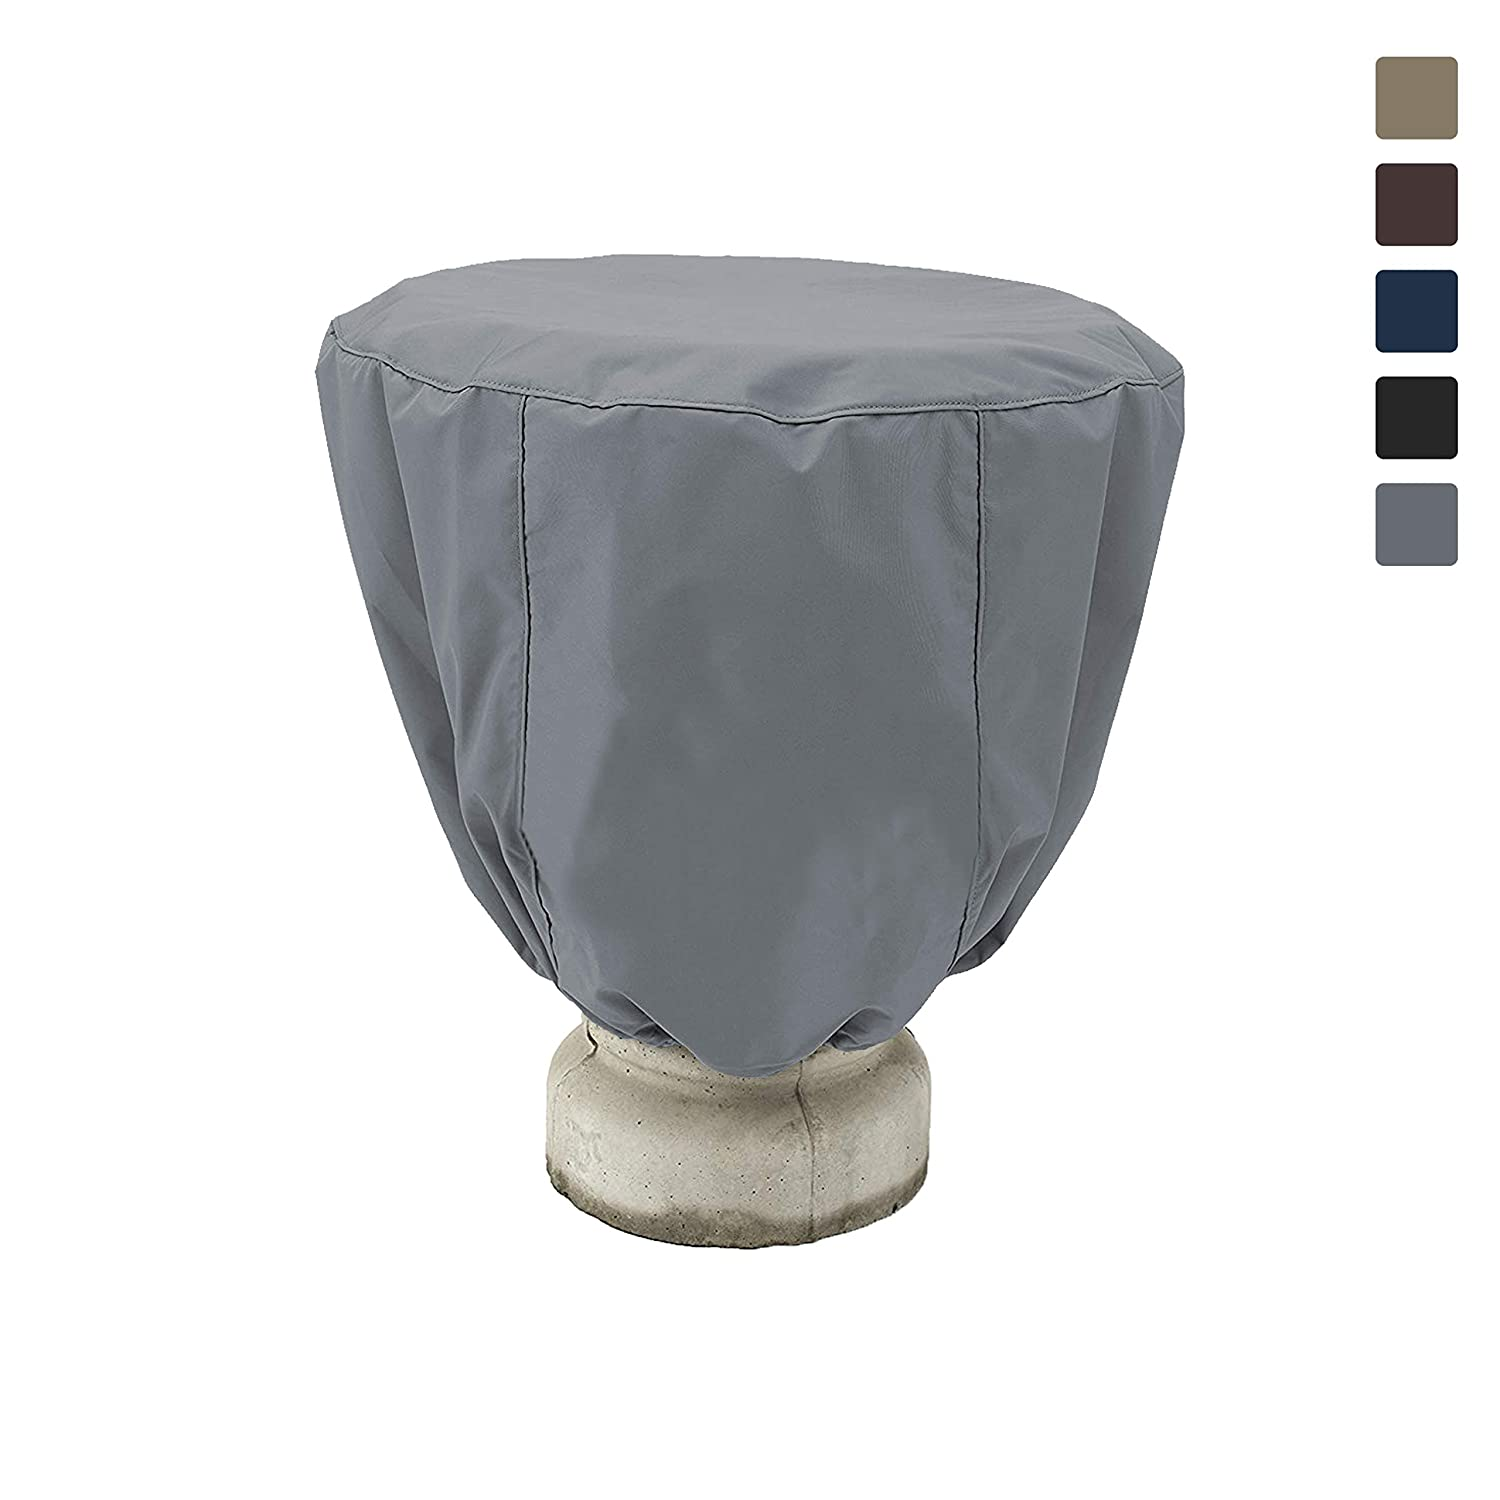 Bird Bath Cover 18 Oz Waterproof - Customize Cover with Any Size - 100% UV Weather Resistant Outdoor Cover with Elastic and Drawstring for Snug Fit (24' Dia x 18' H, Black)